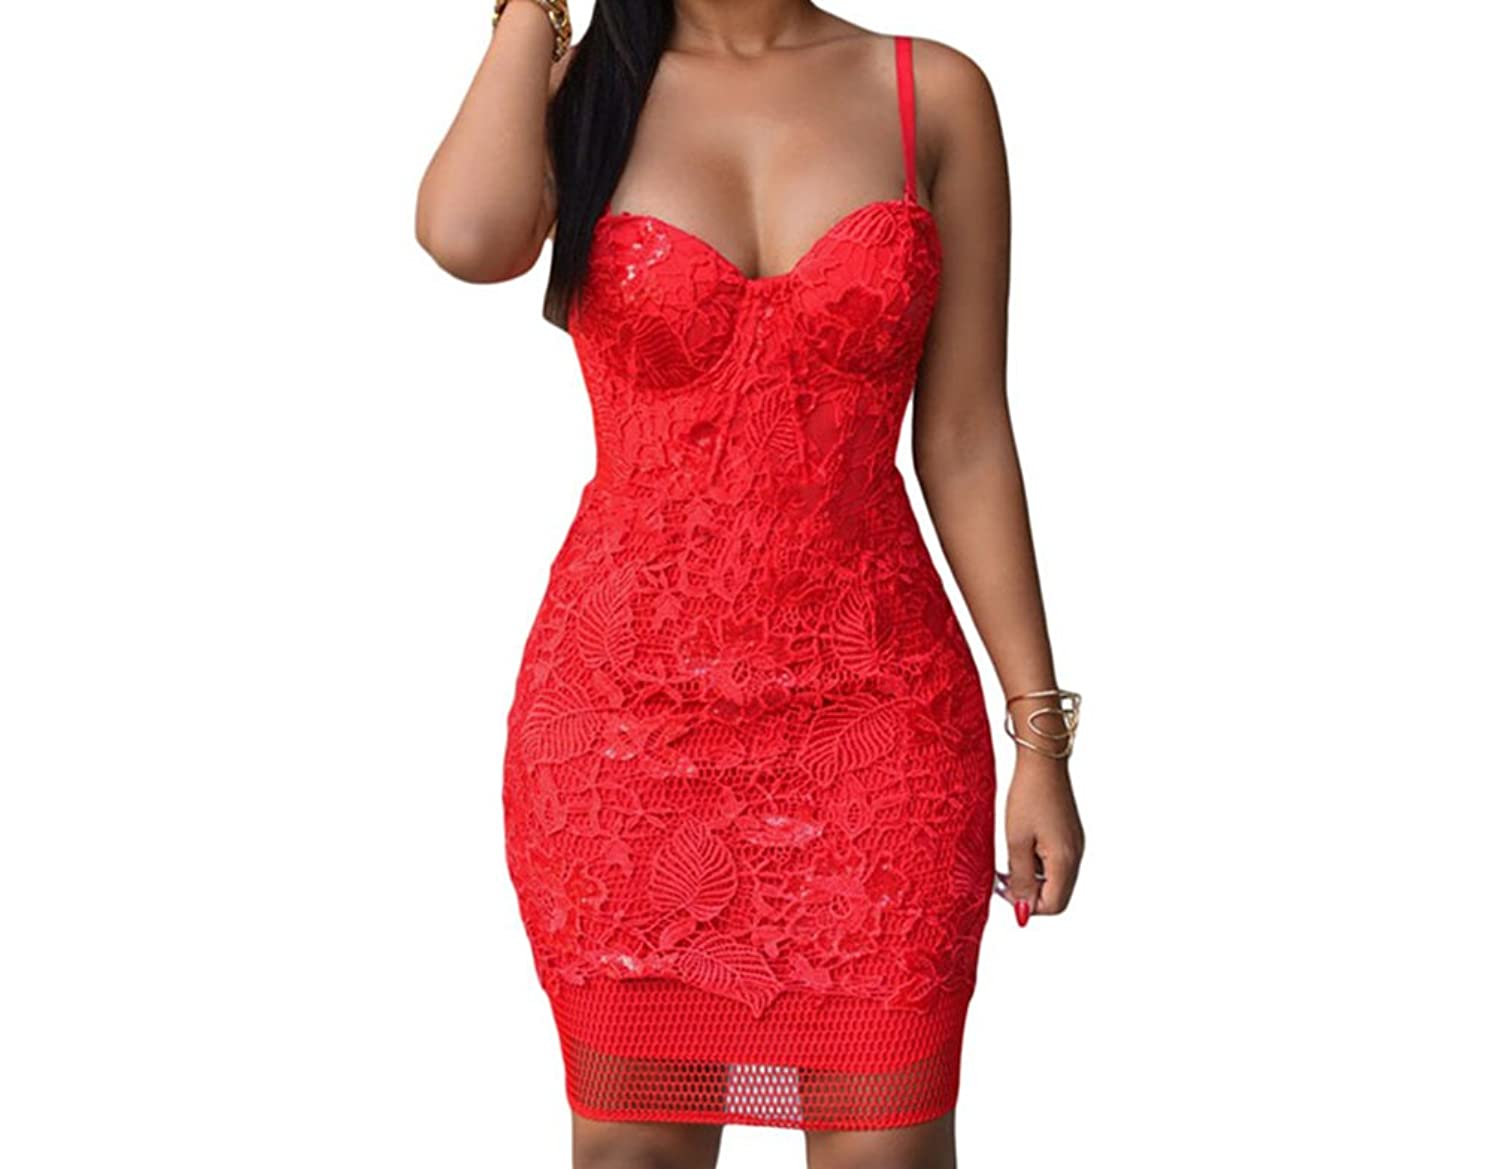 Bling-Bling Womens Red Lace Padded Bridal Party Dress